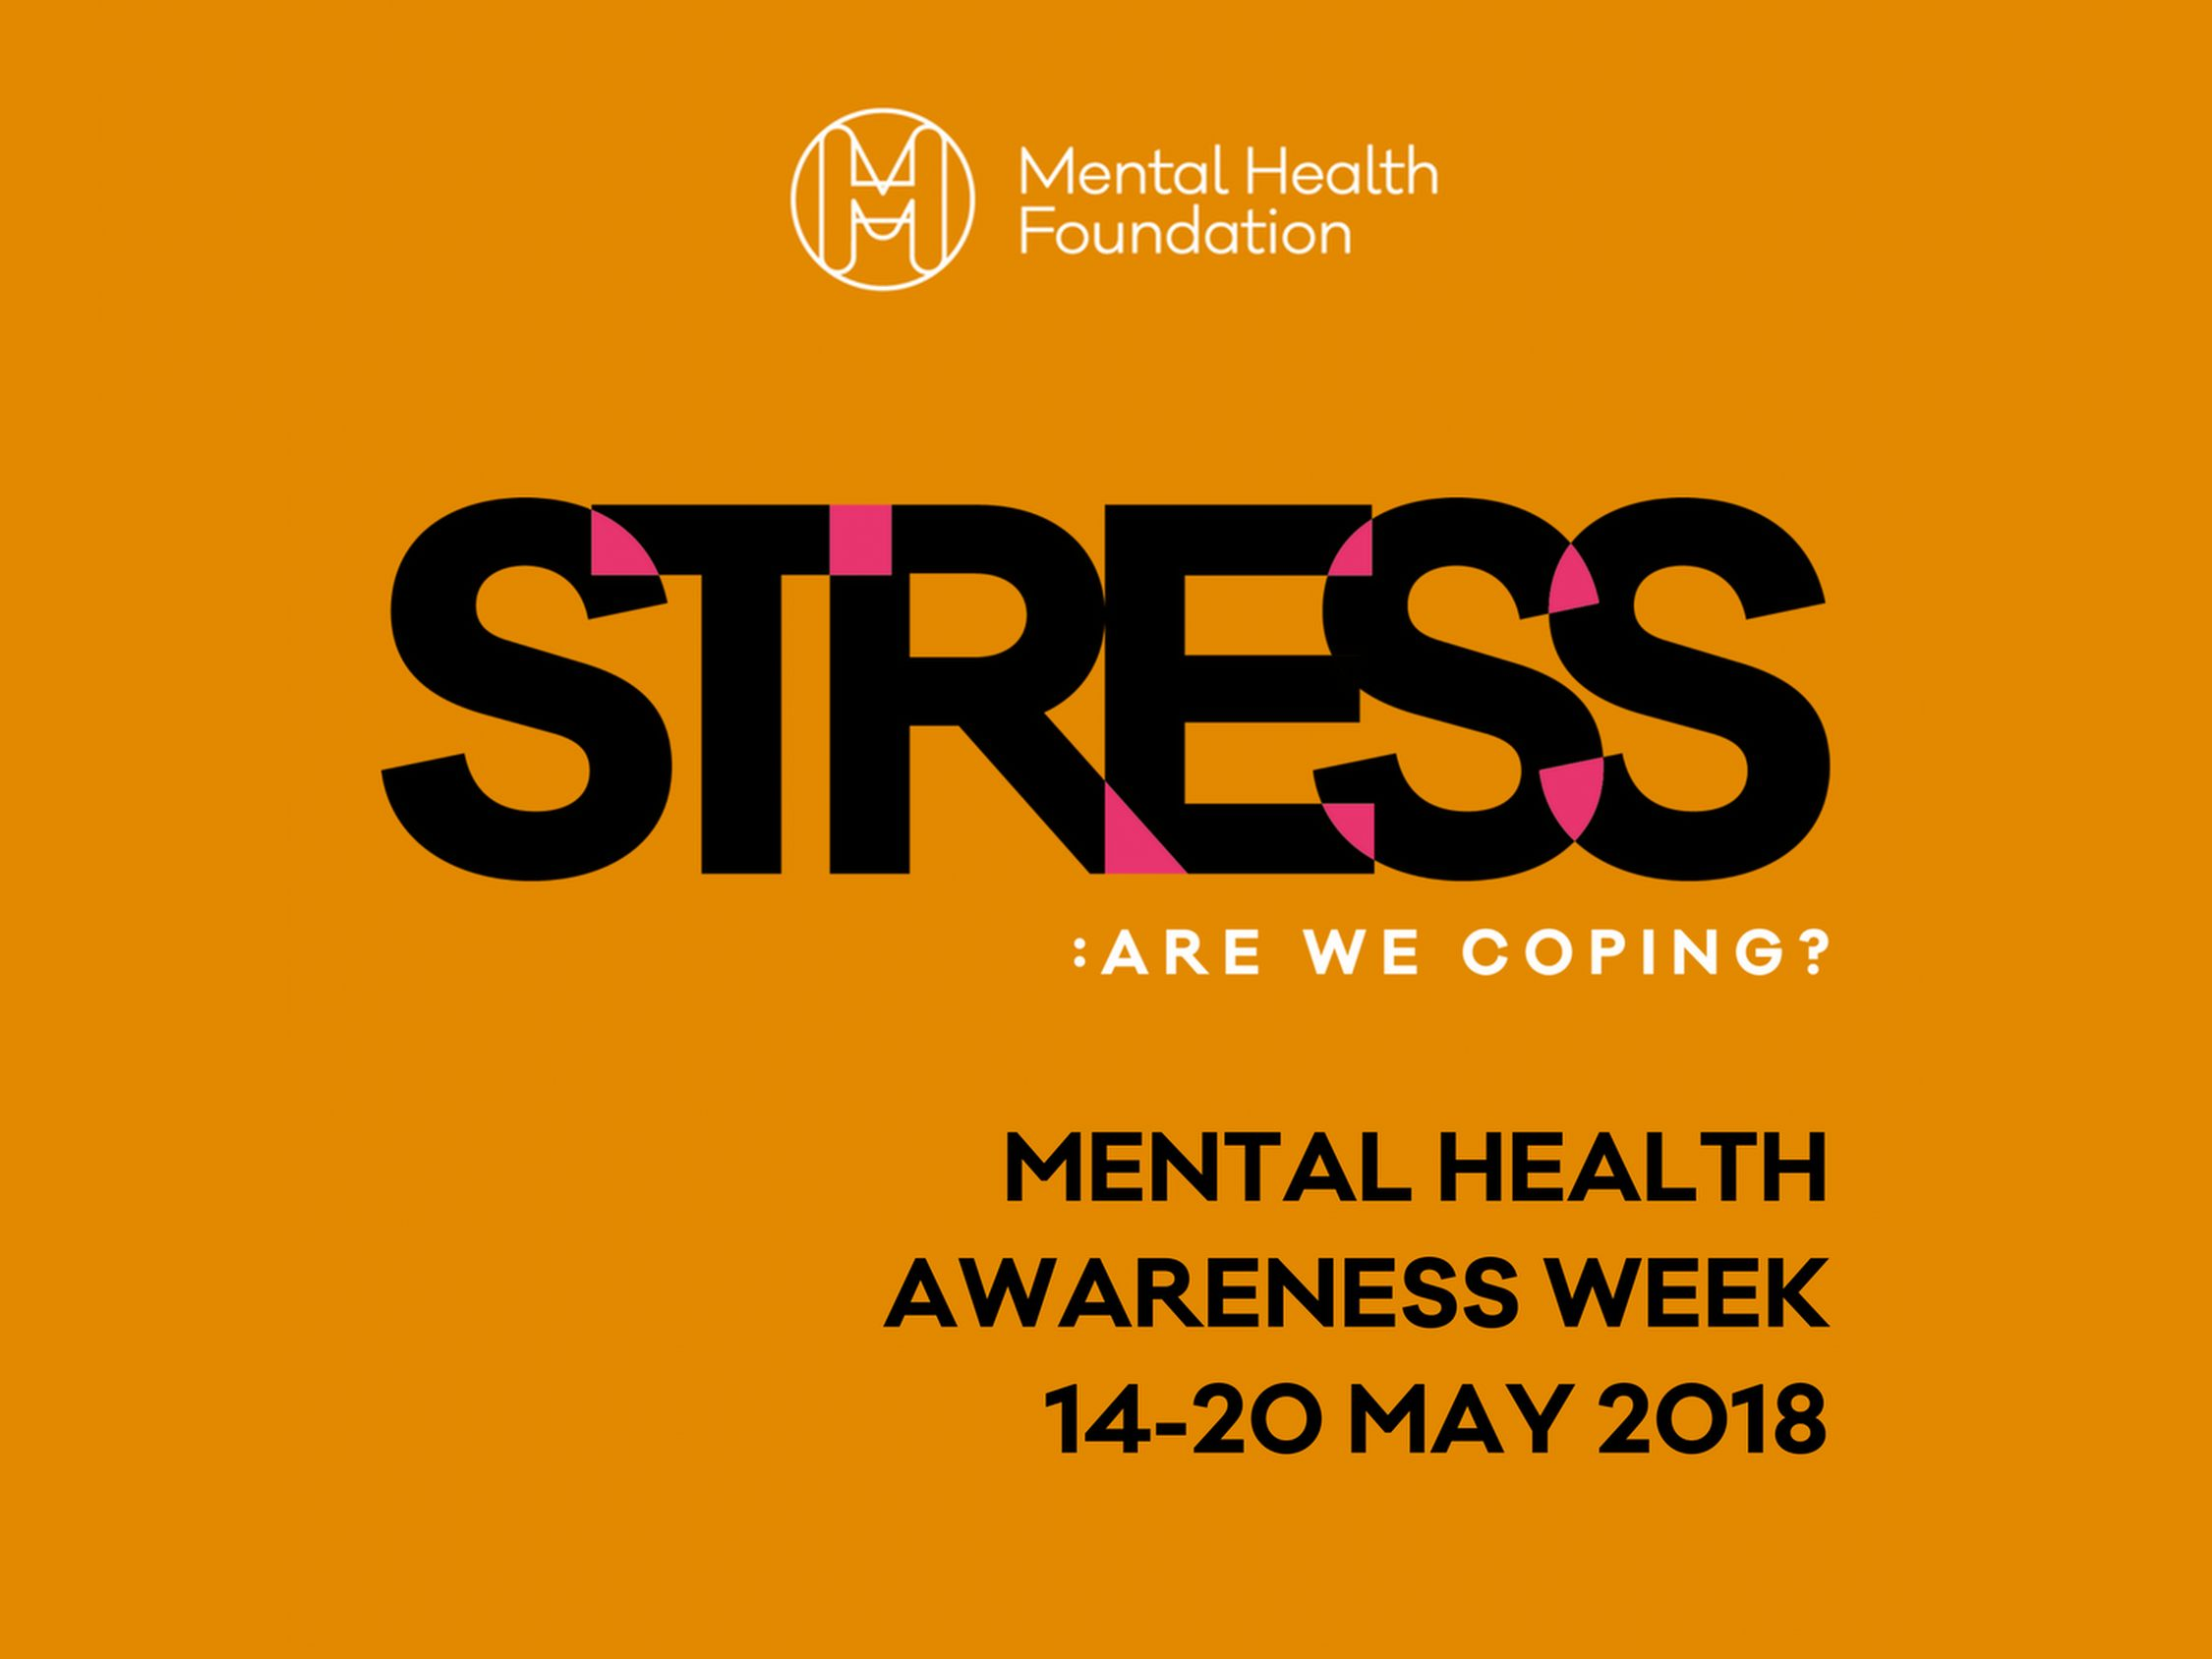 MyCouncillor-image-Mental-health-Awareness-Week-2018